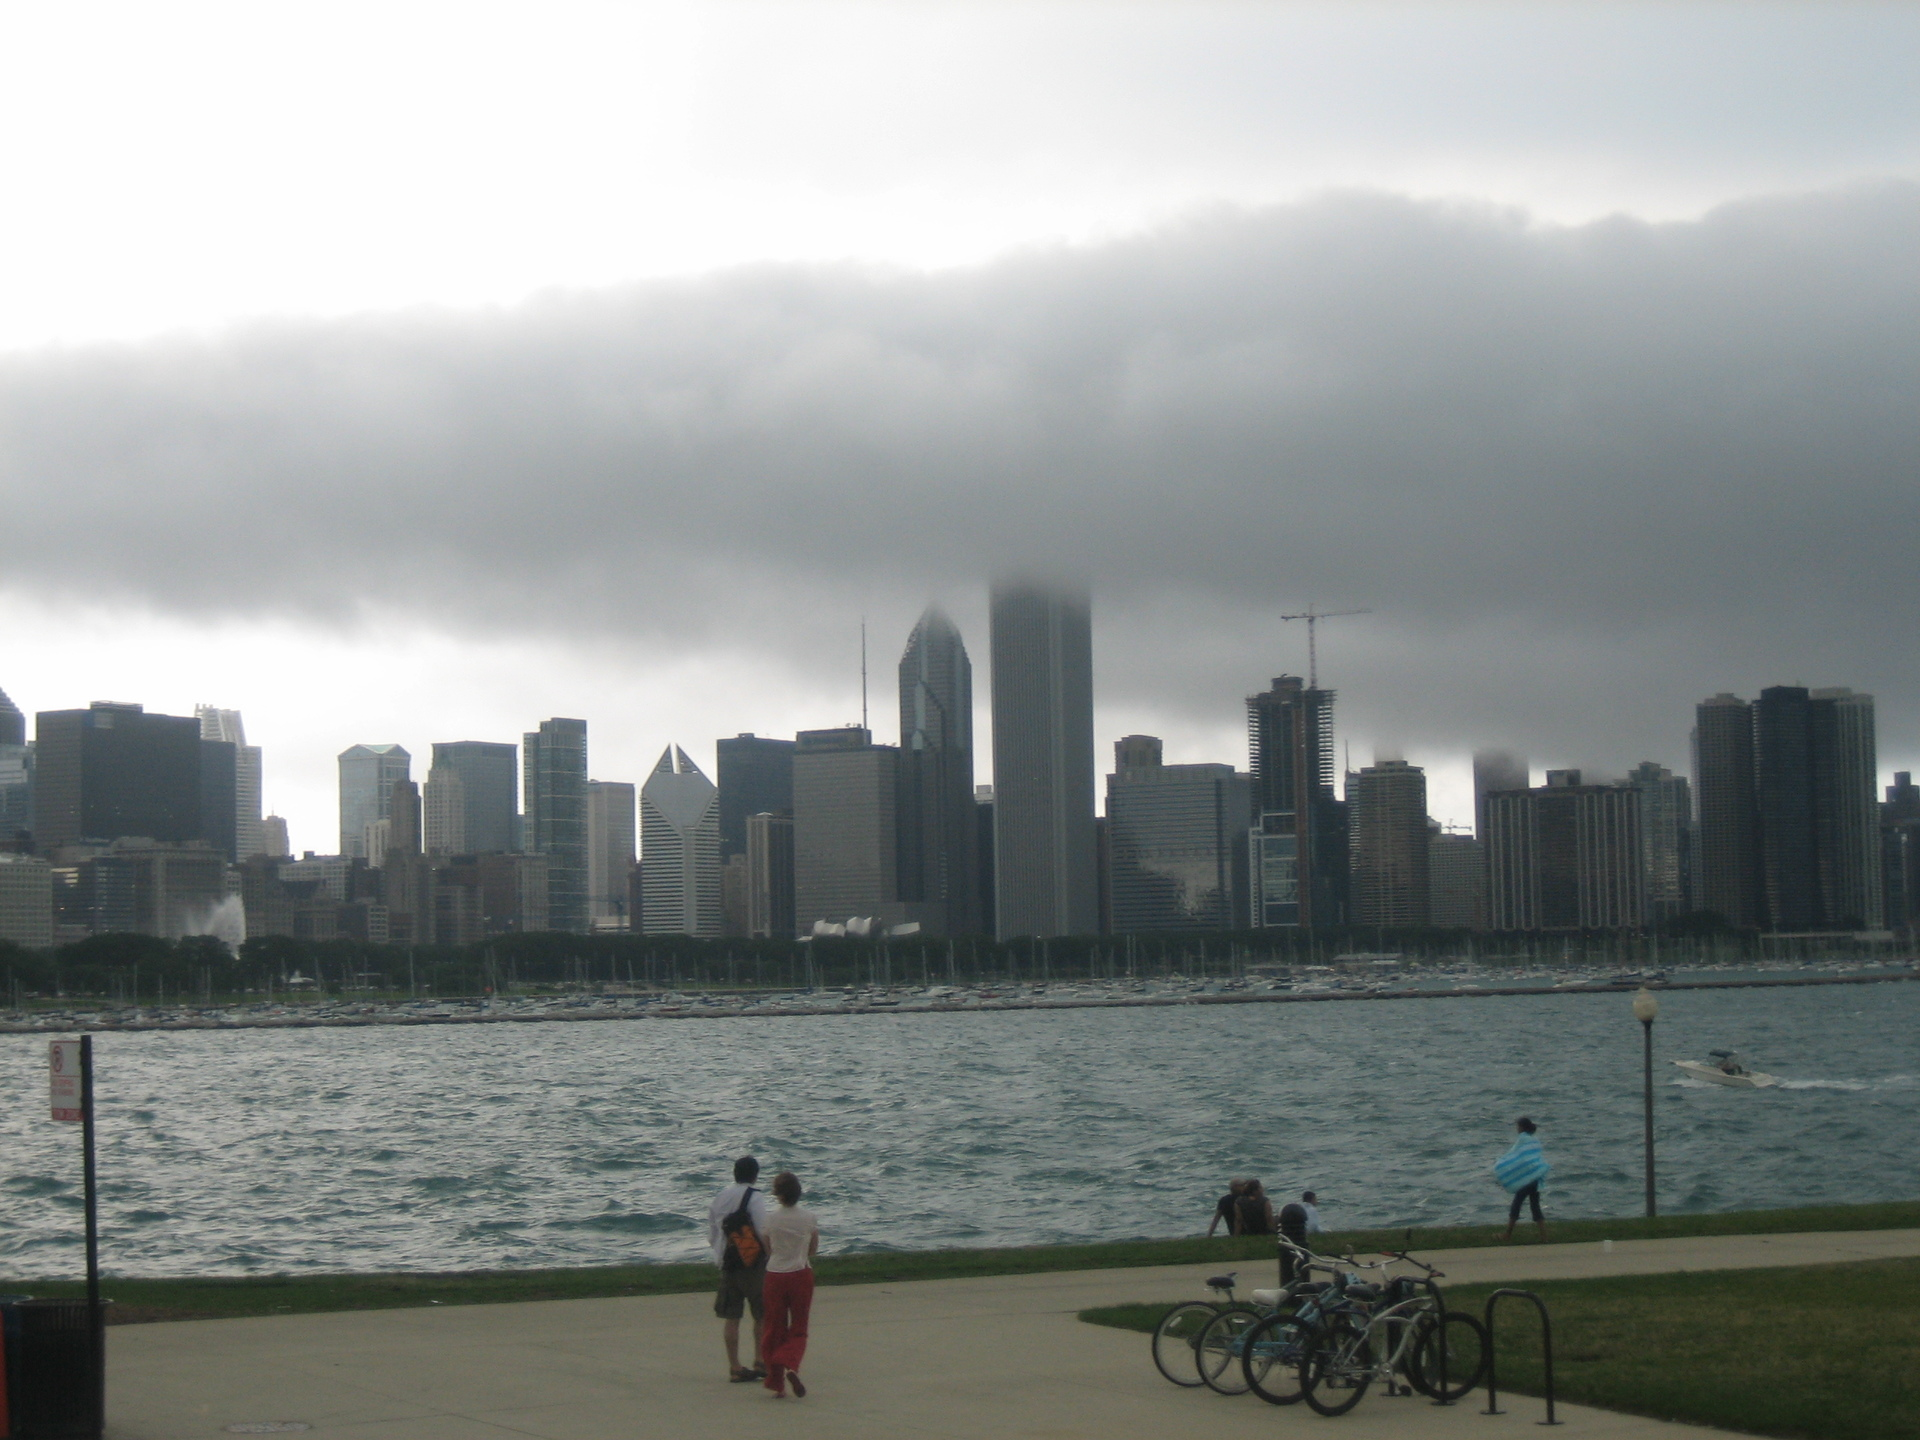 Chicago images Stormy Chicago HD wallpaper and background photos 1920x1440